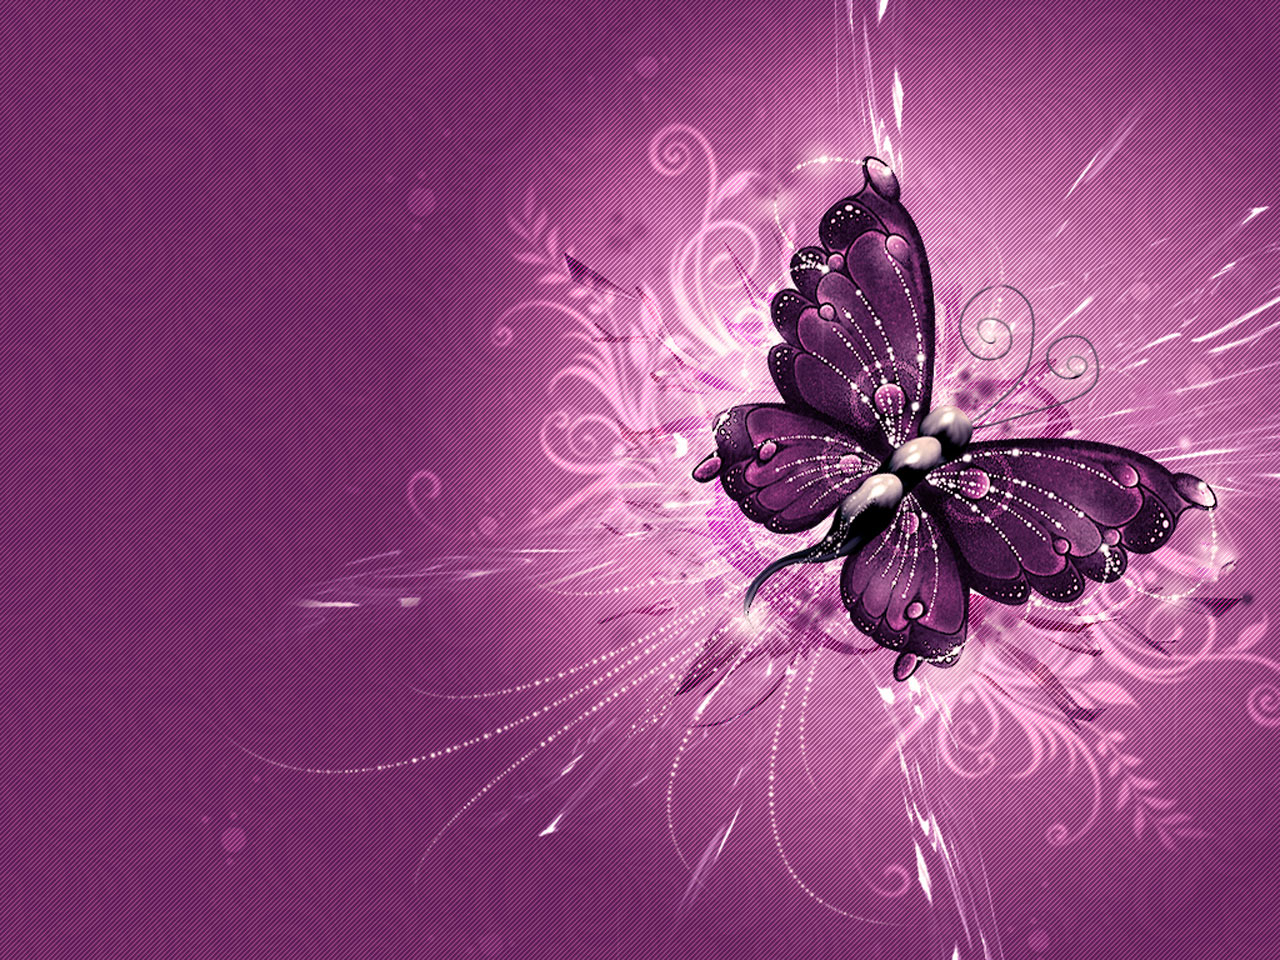 HD wallpaper Fantastic Purple Butterfly Wallpaper Desktop Background 1280x960